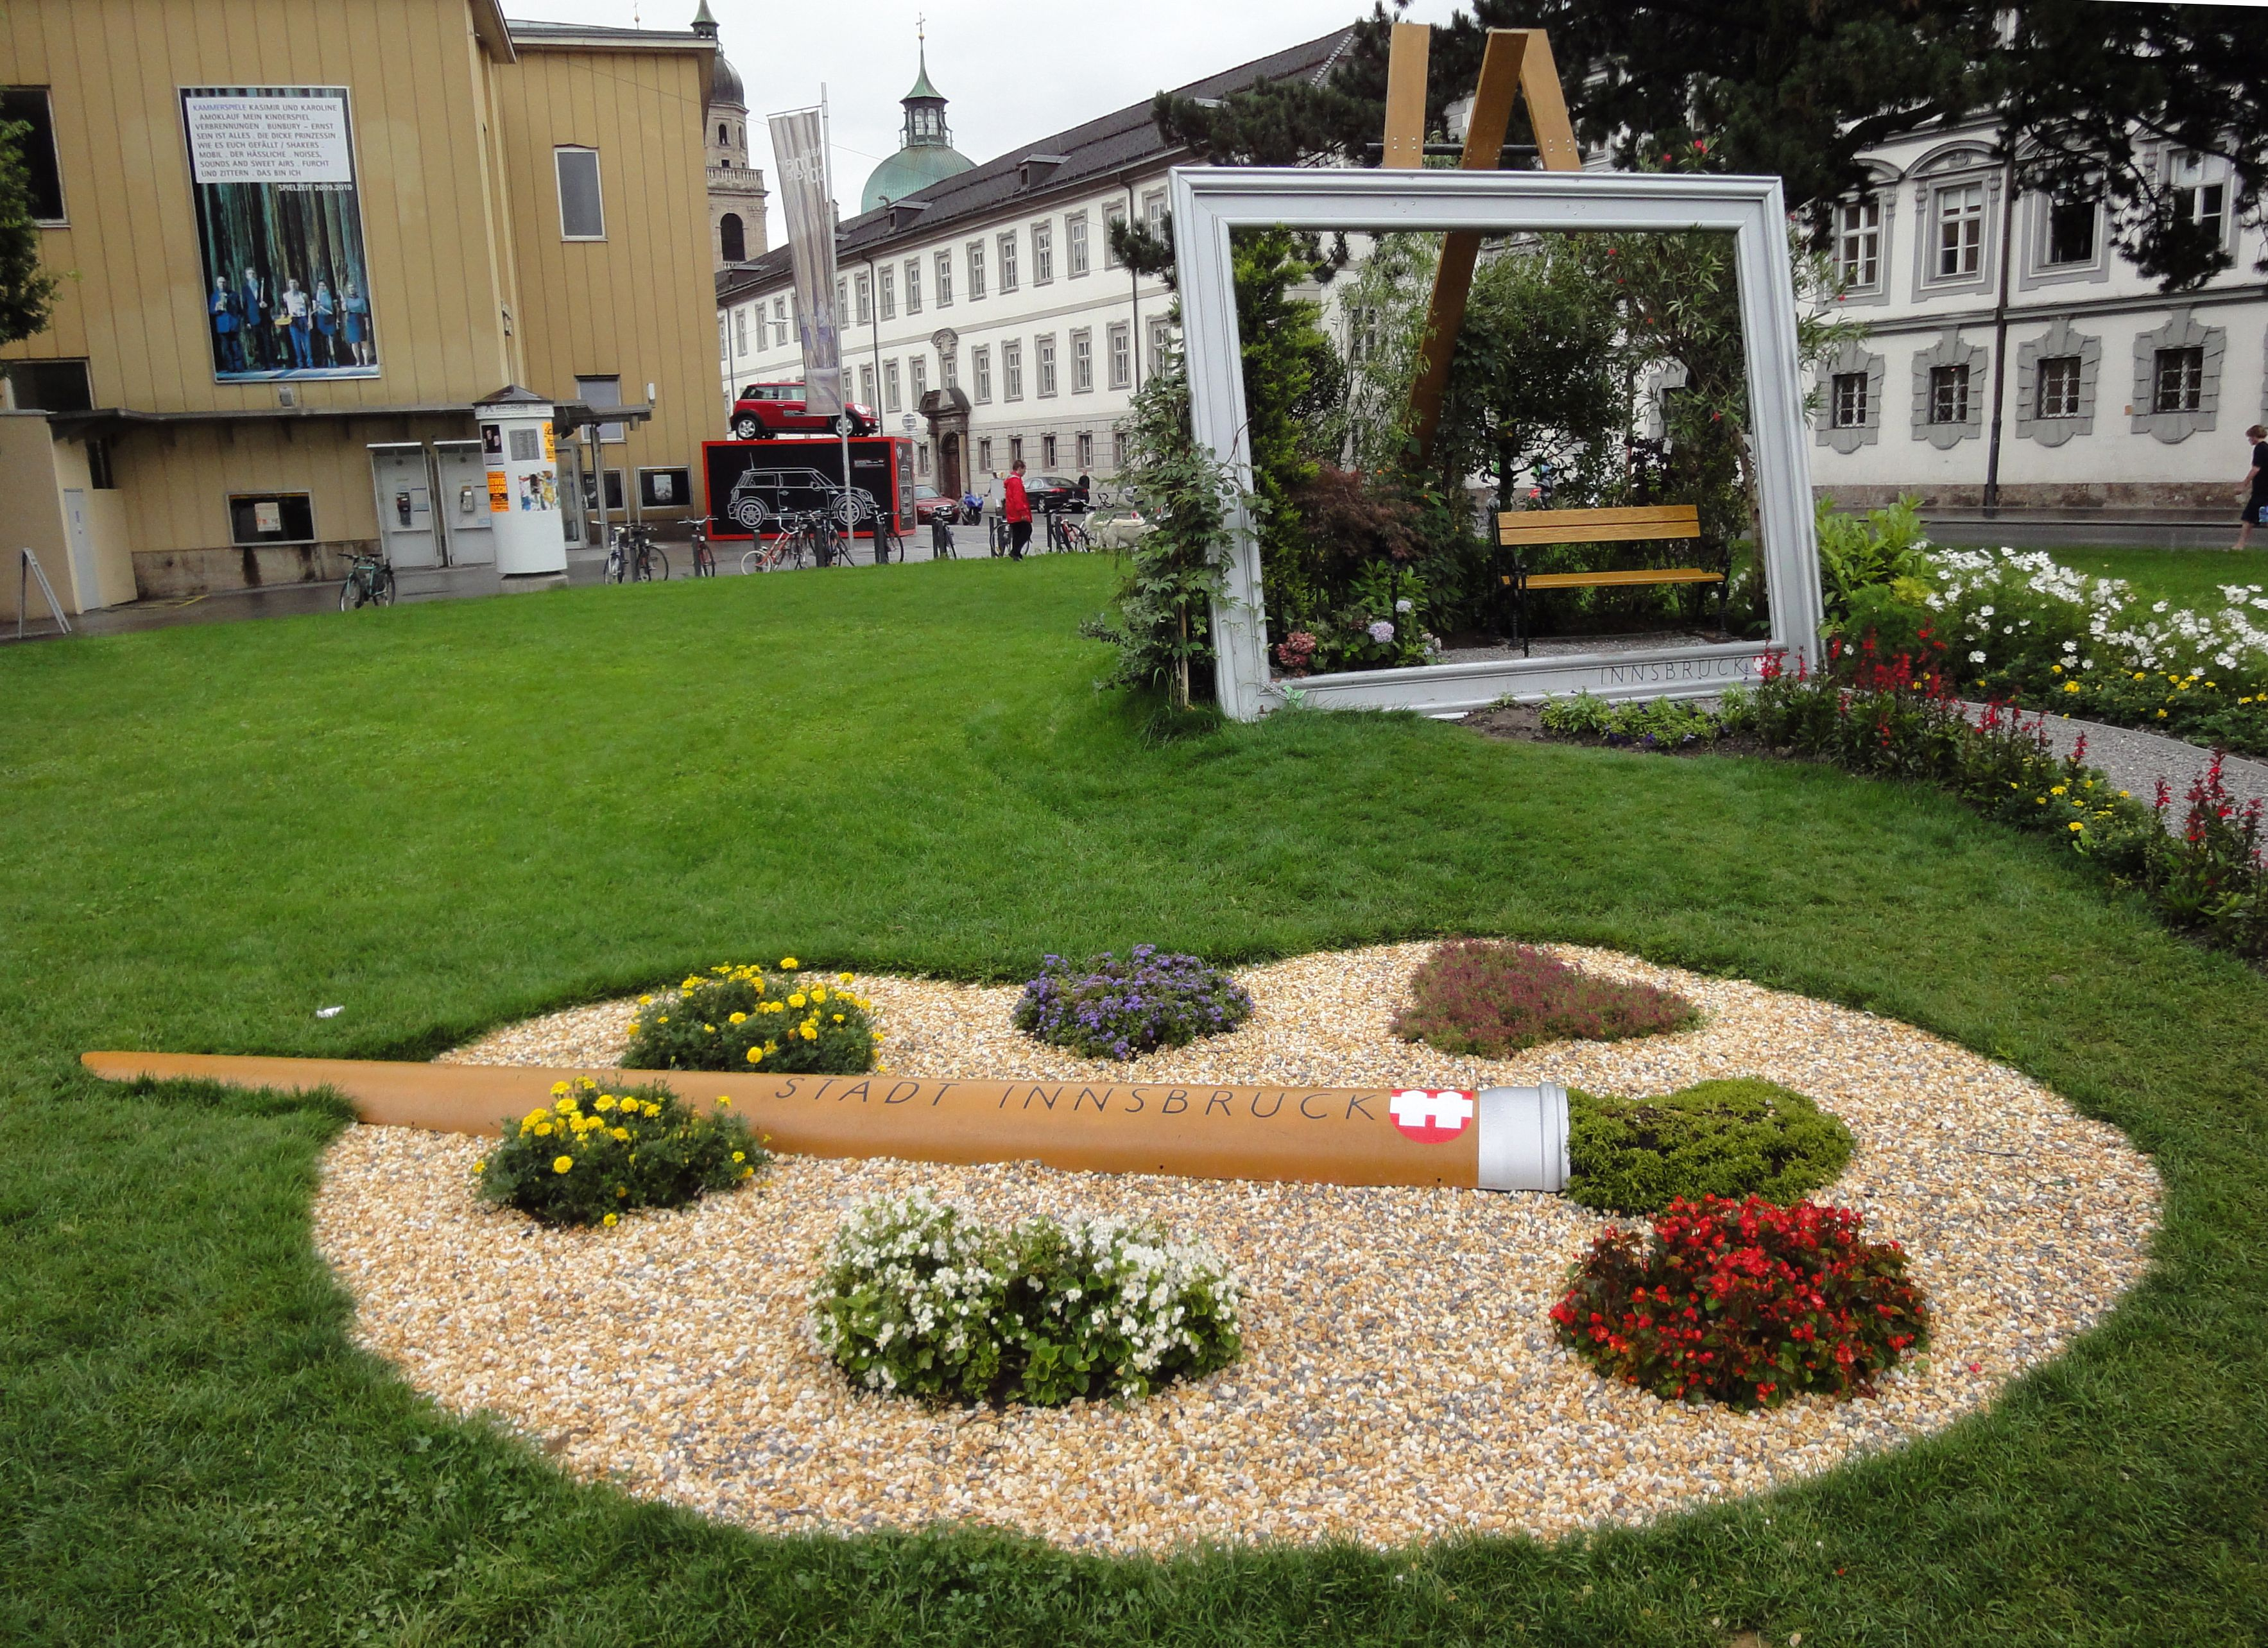 Innsbruck garden (With images) House styles, Outdoor